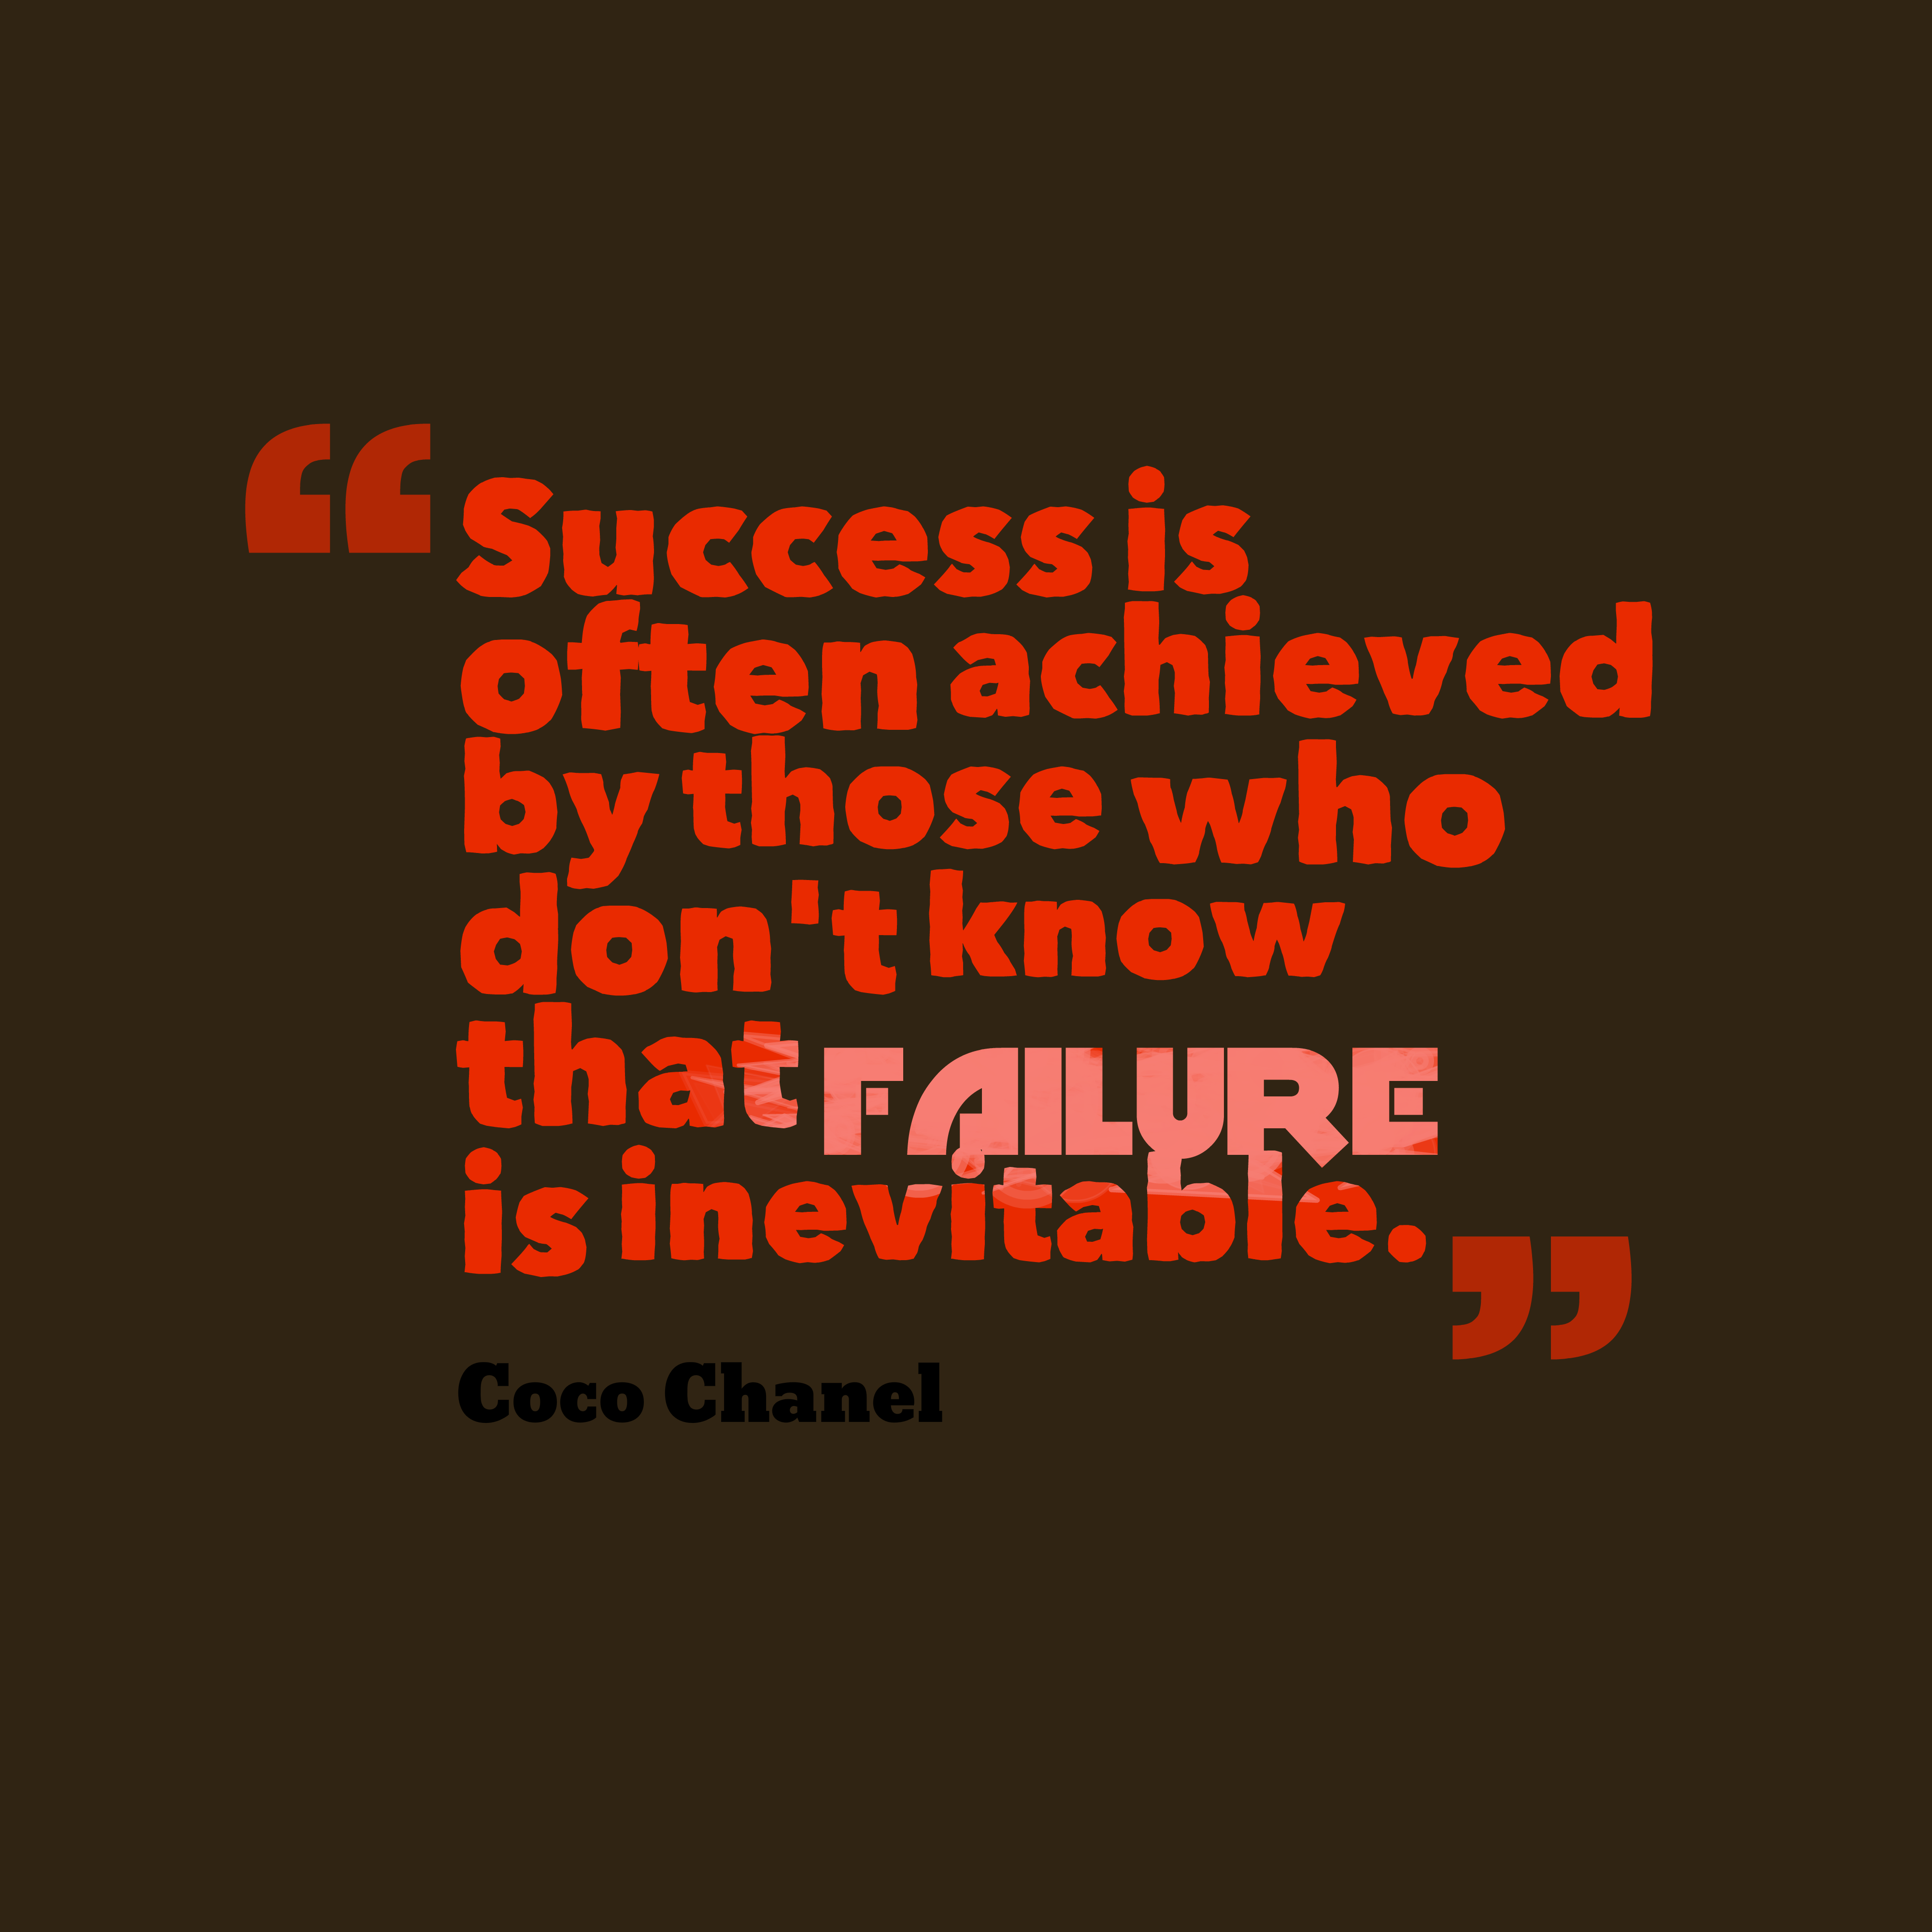 Quotes image of Success is often achieved by those who don't know that failure is inevitable.